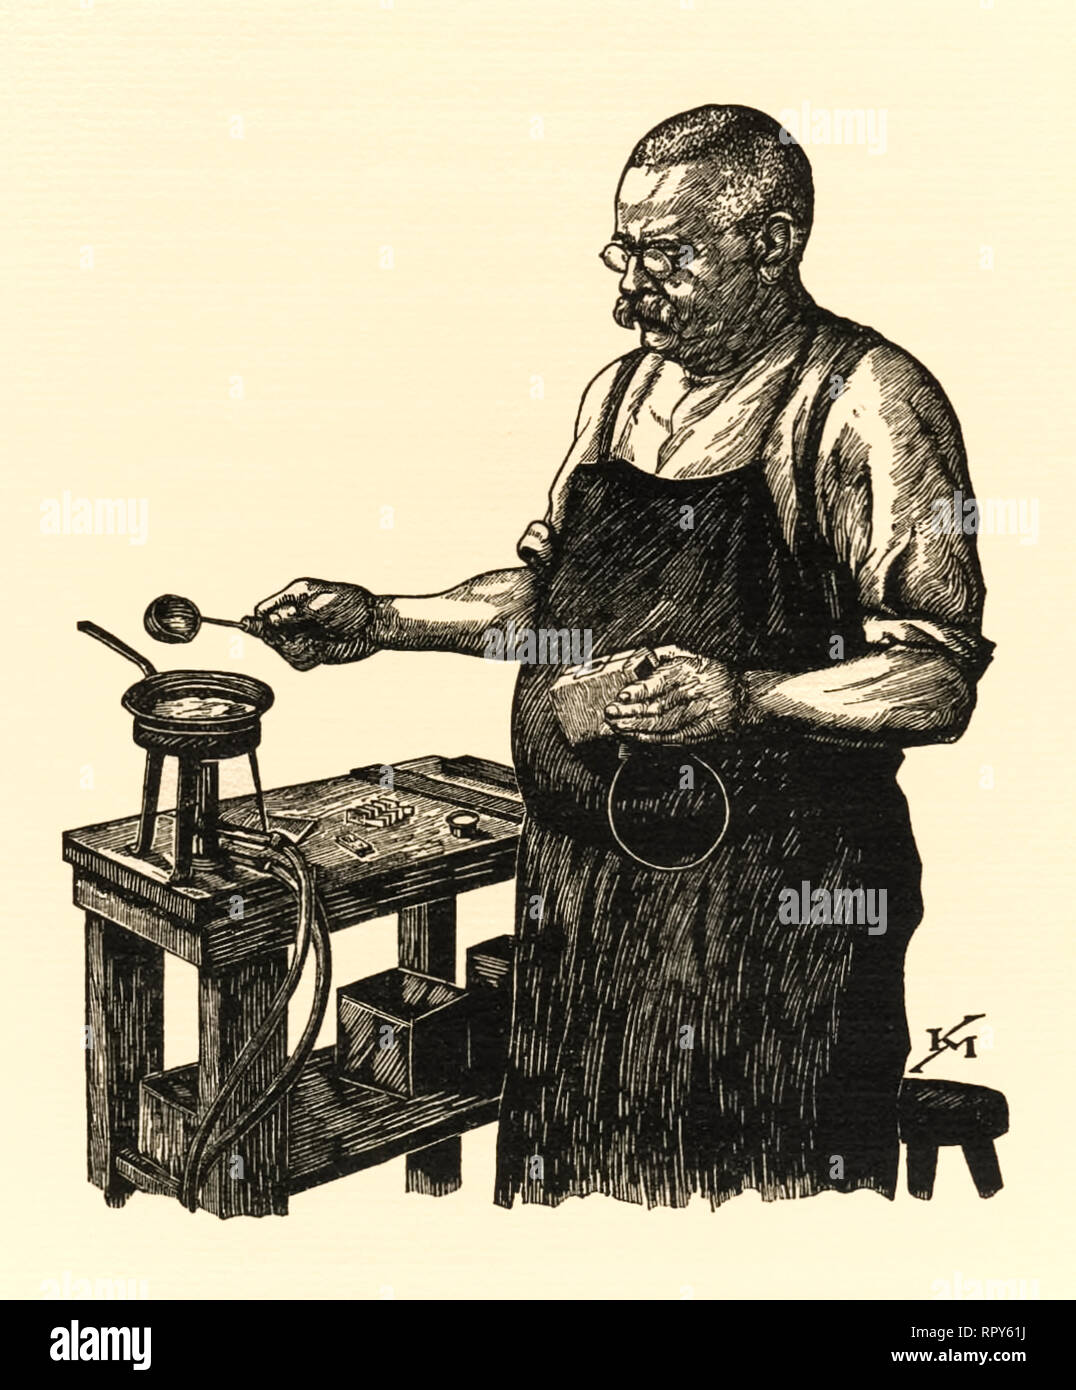 Preparing metal type for use in letterpress printing. Here molten metal is being prepared to be poured into a mold to cast a glymph for use in hand set metal moveable type printing. Woodcut by Karl Mahr (1890-1945). - Stock Image